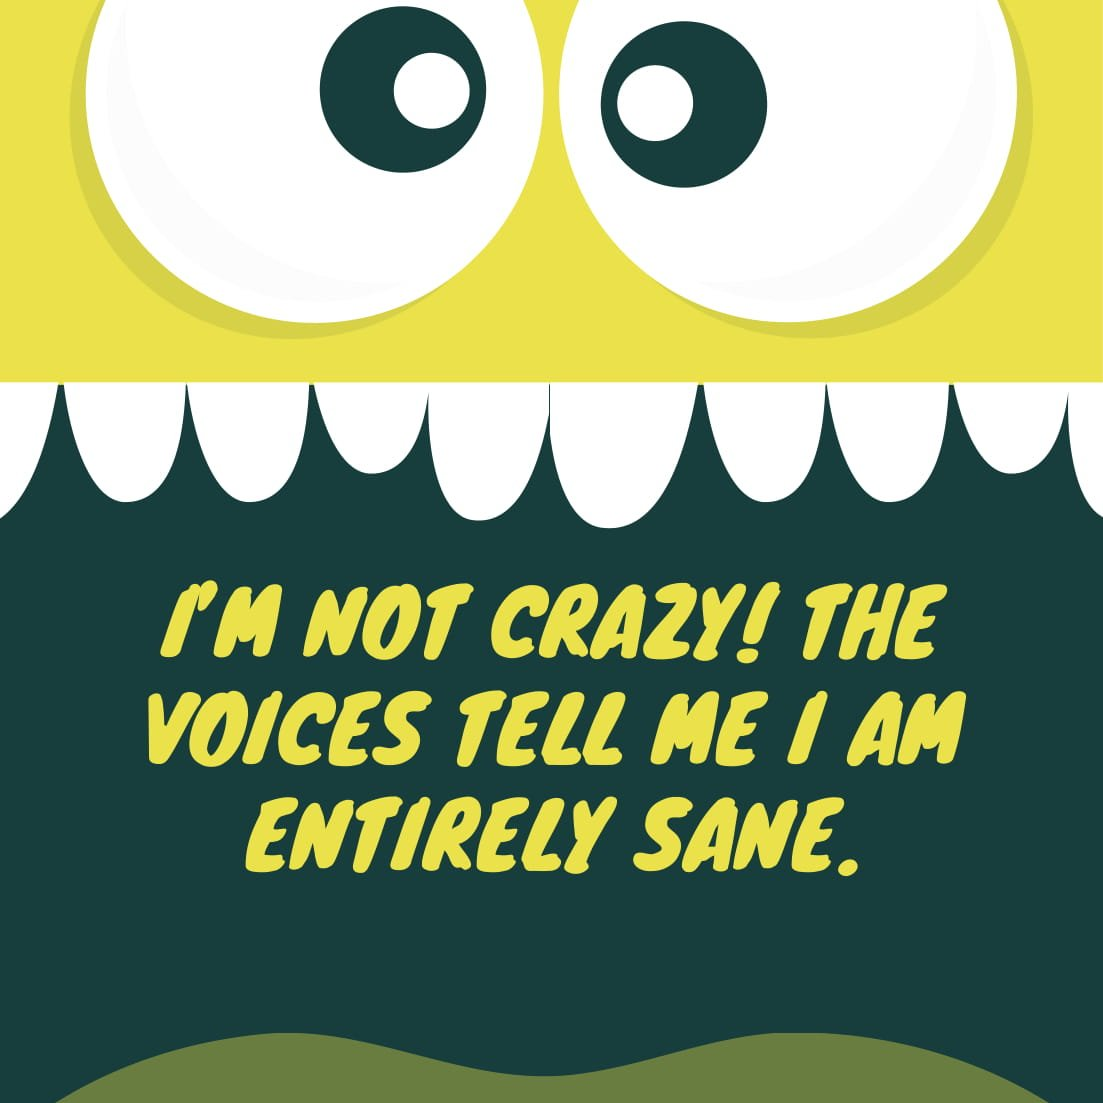 I'm not crazy! The voices tell me I am entirely sane.